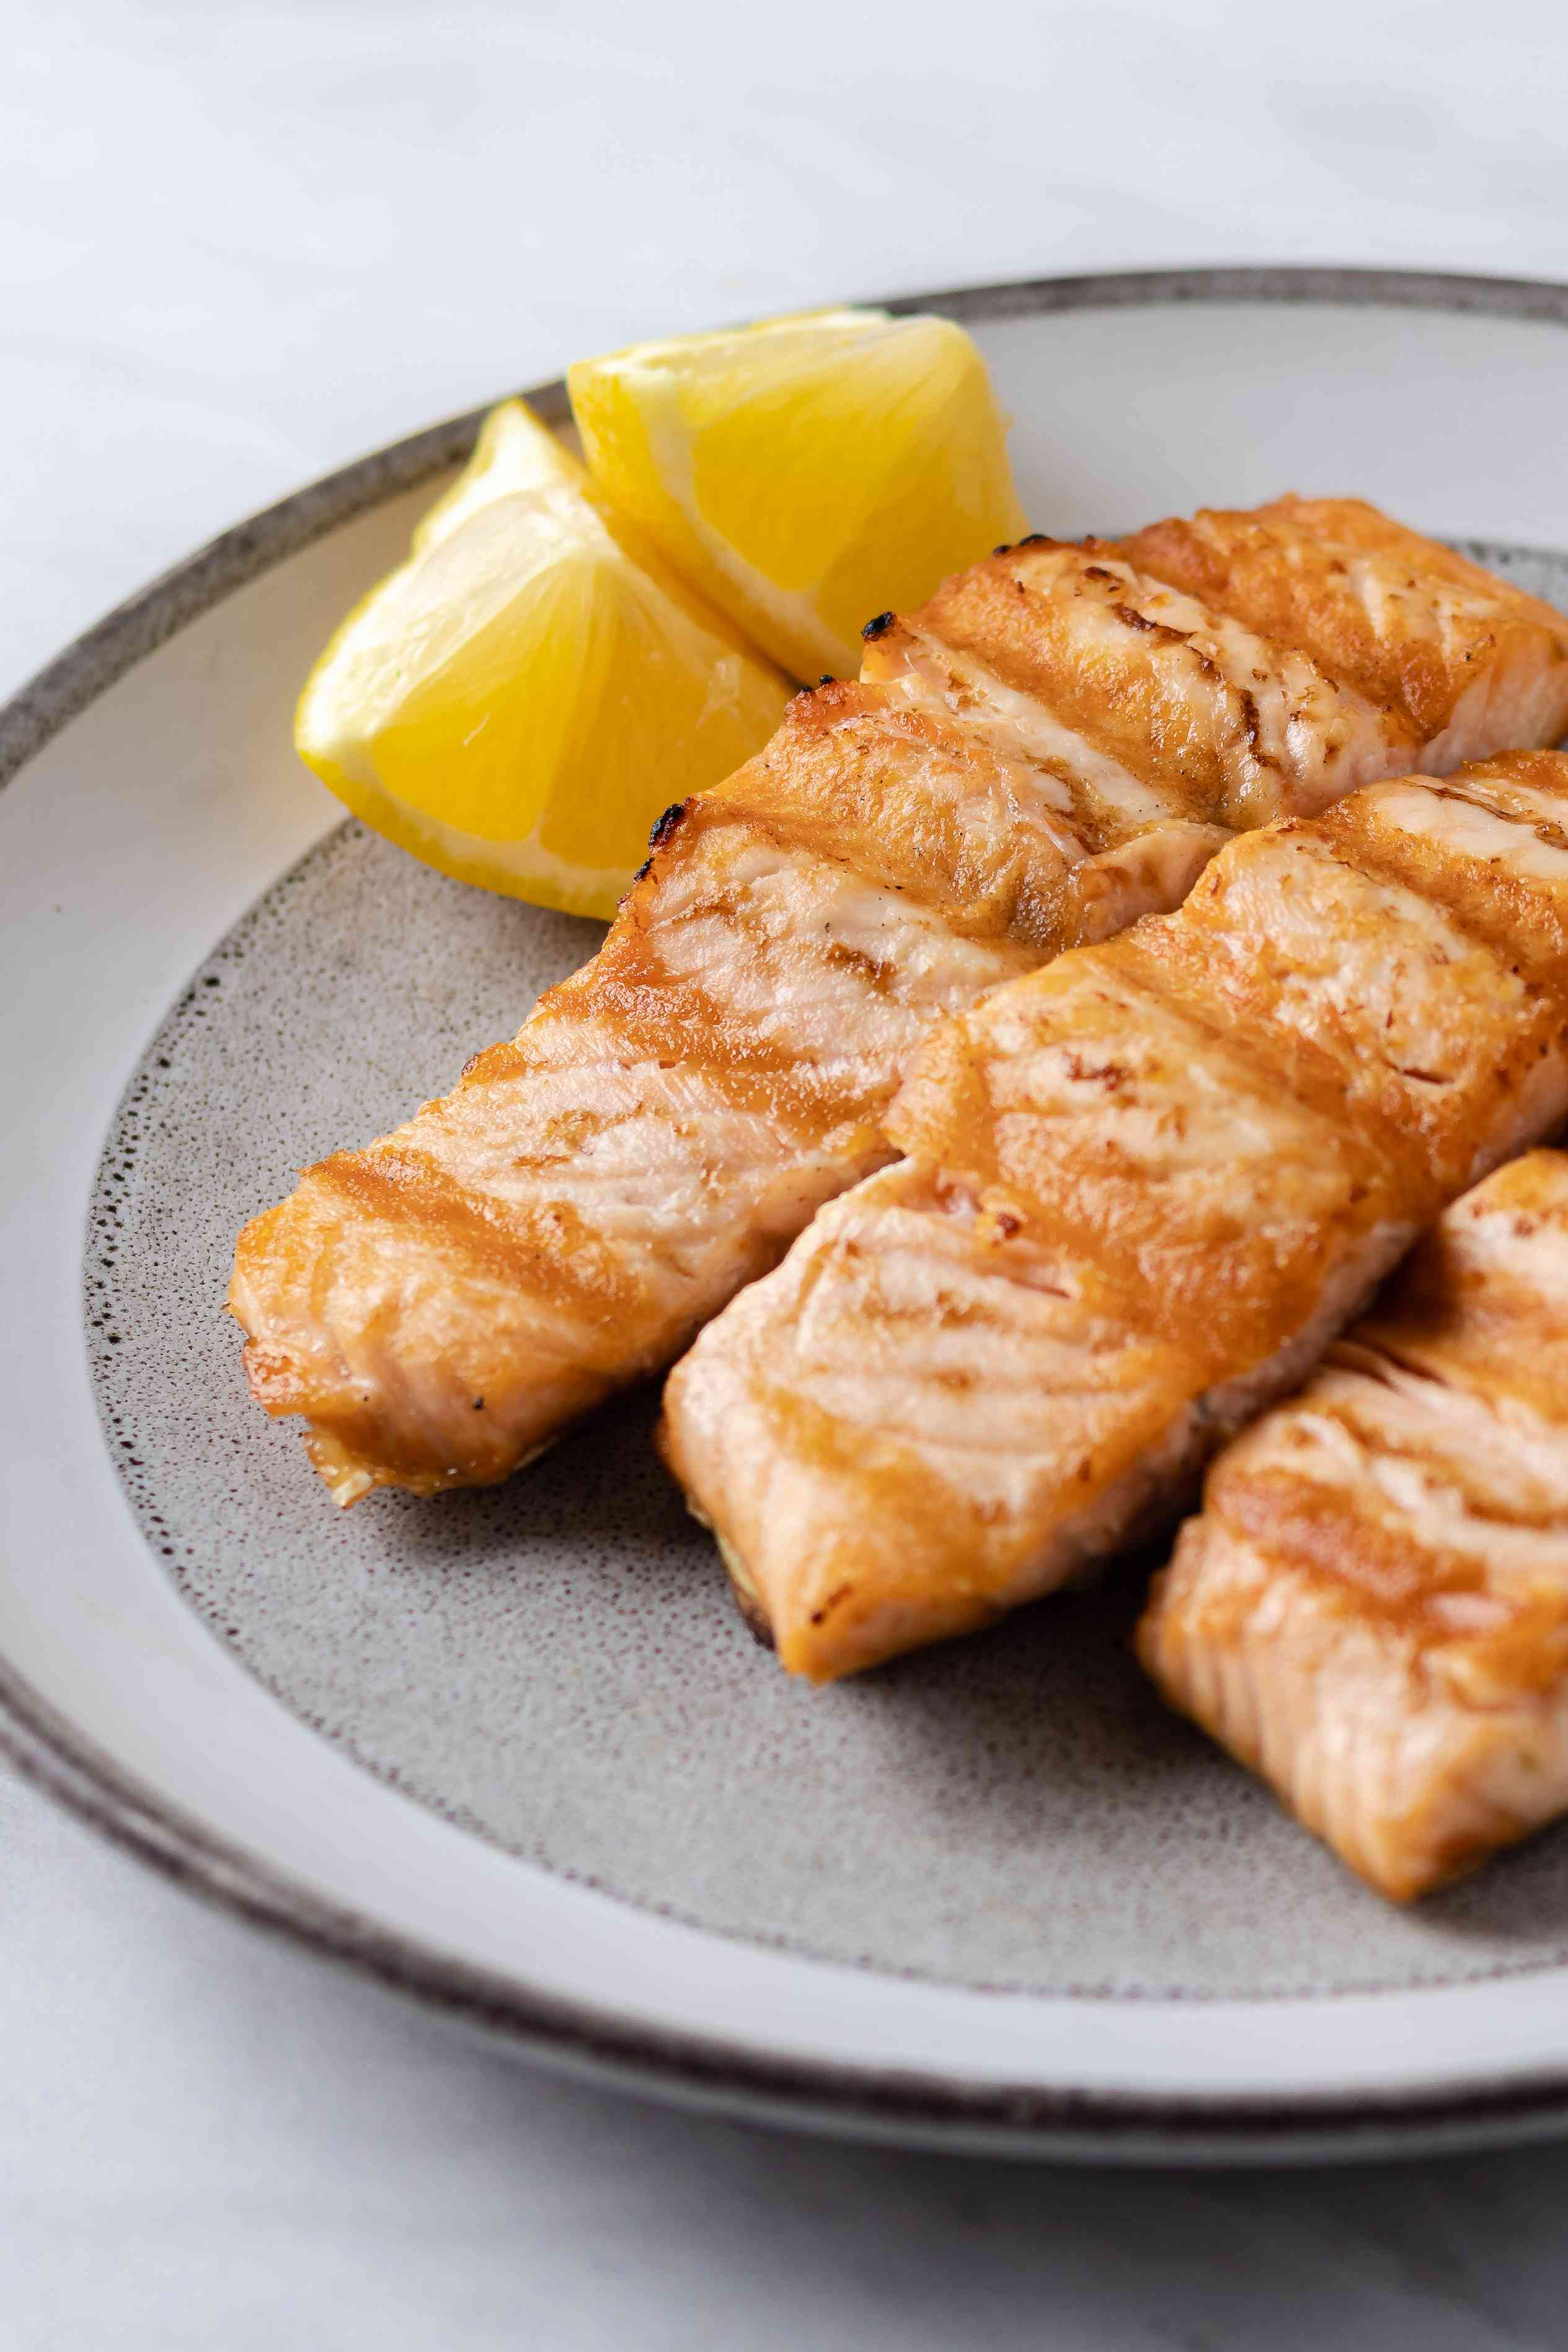 A plate of grilled salmon recipe.